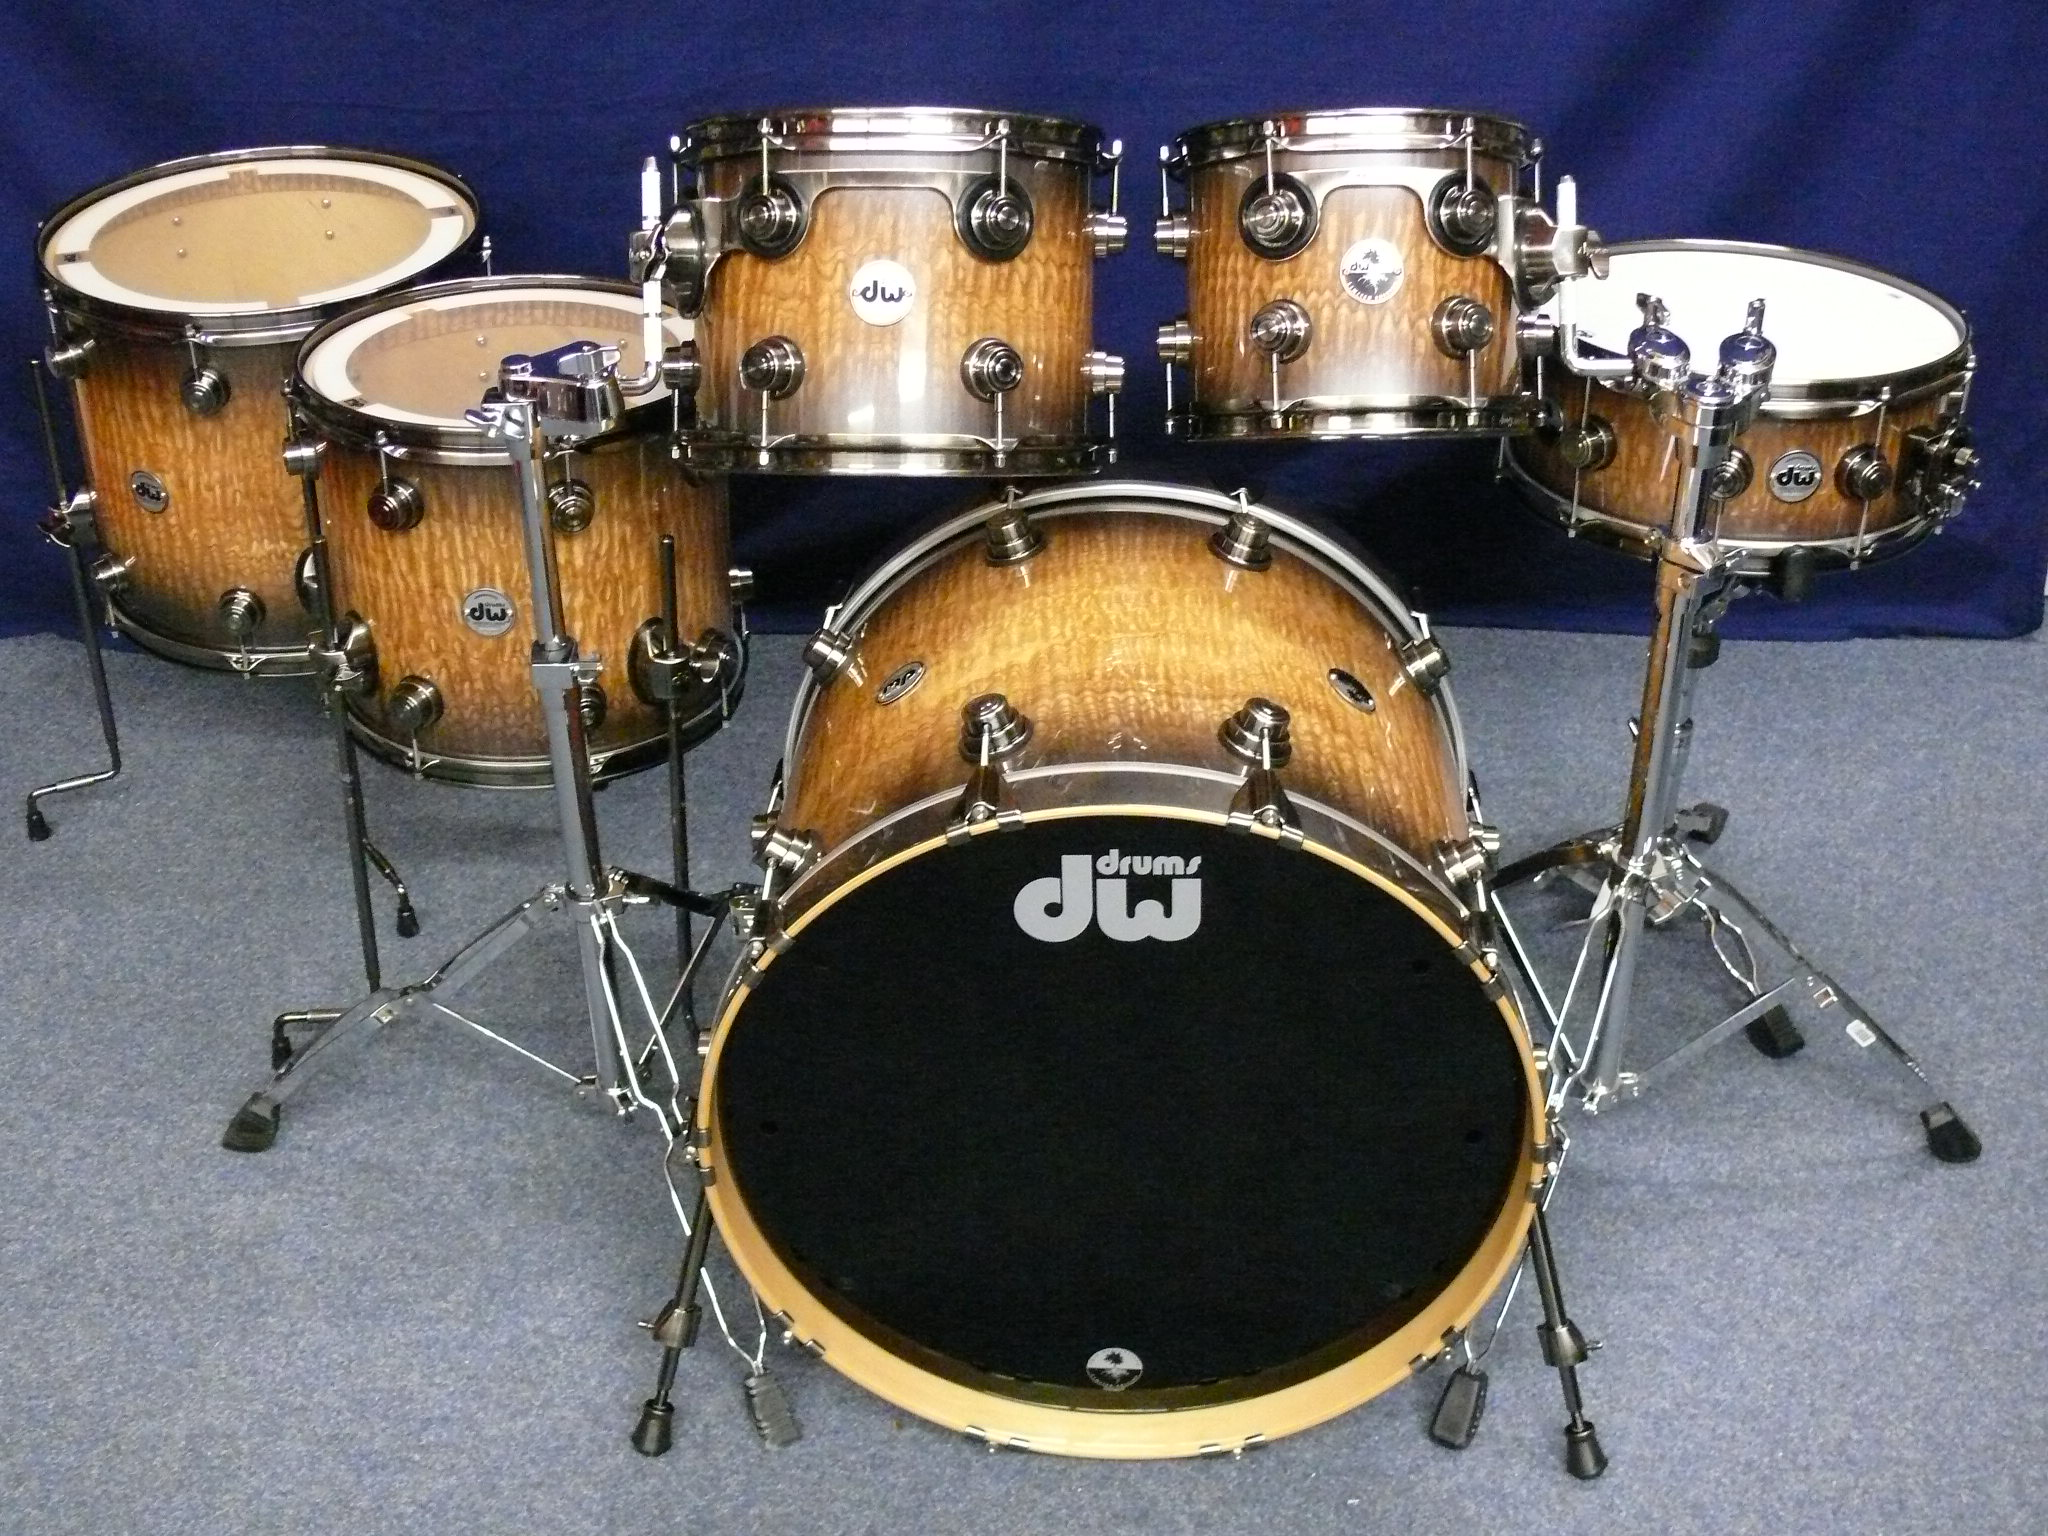 dw 40th anniversary limited edition drumset 2011 candy black pearlescent burst over exotic tamo. Black Bedroom Furniture Sets. Home Design Ideas